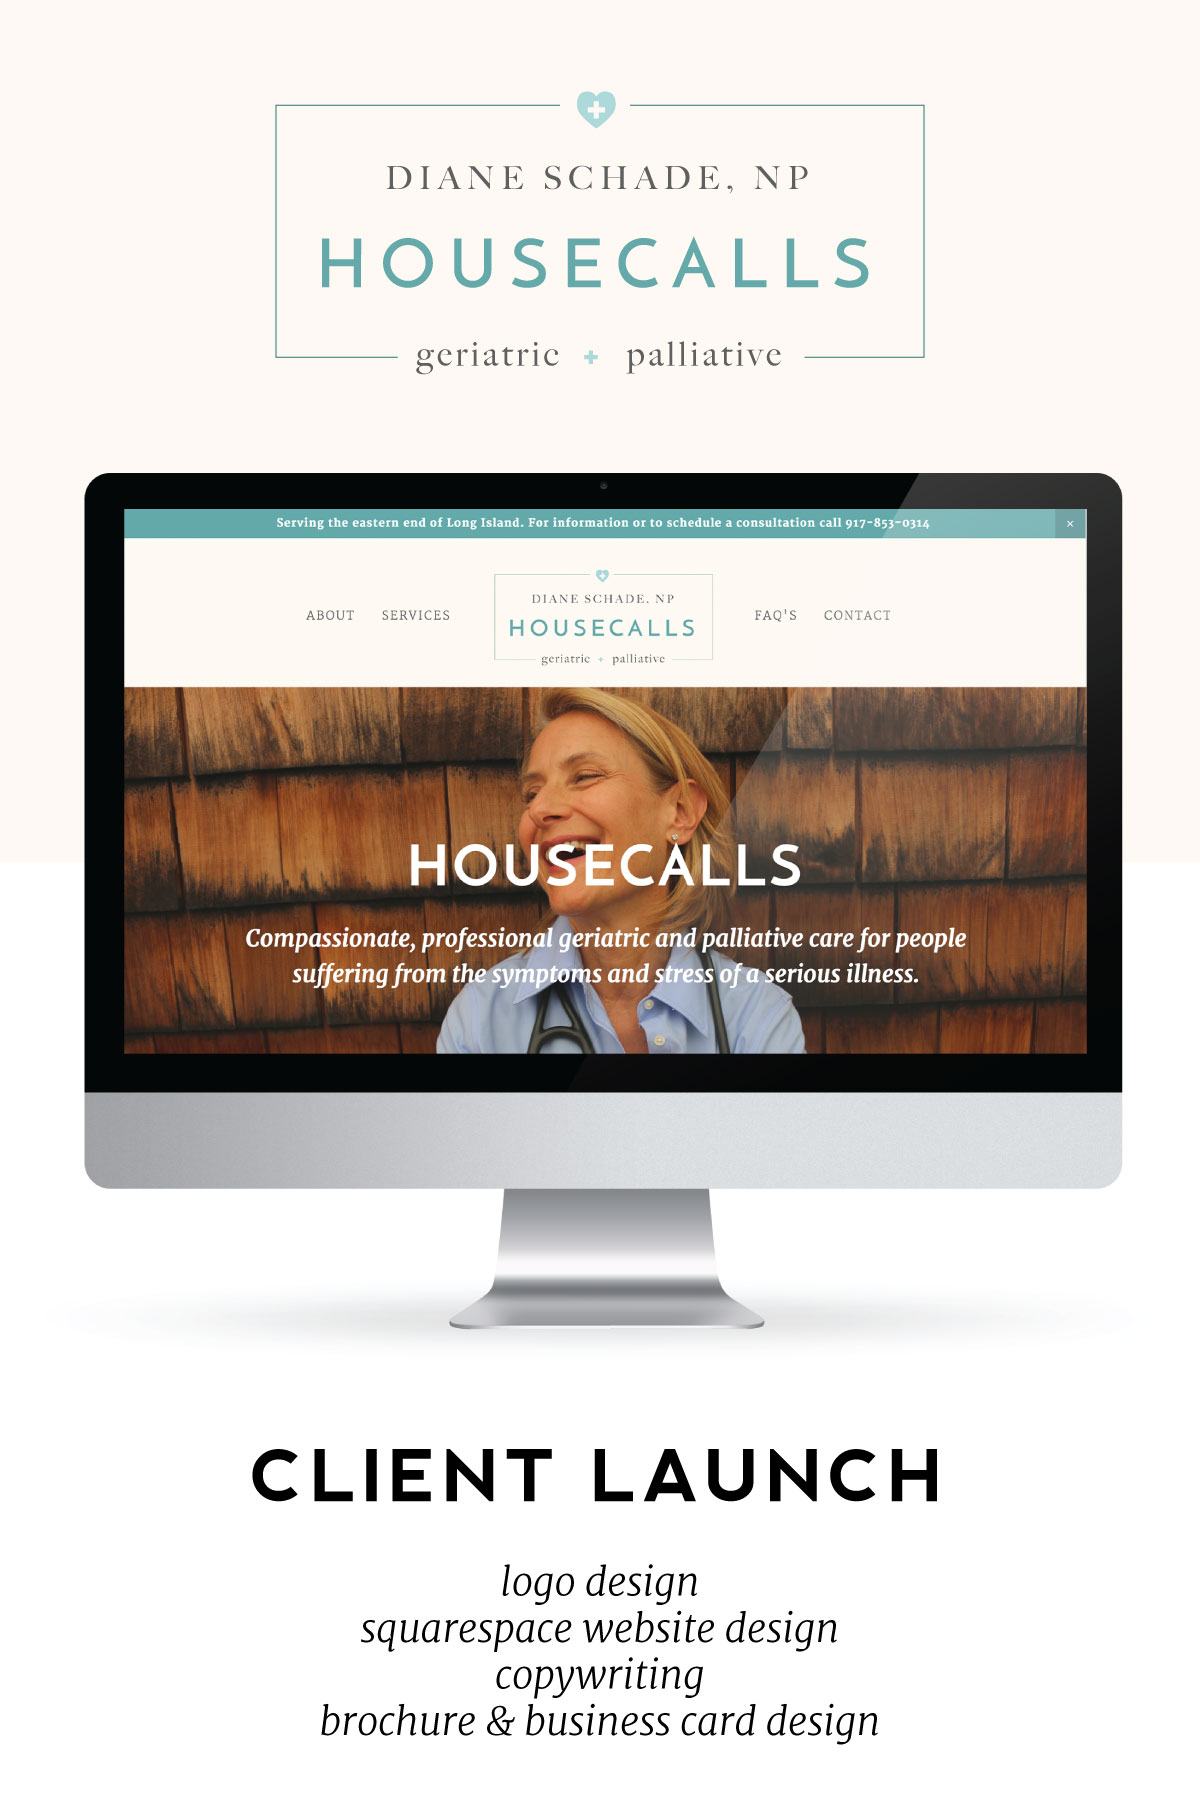 Today we're celebrating the launch of our lovely client Diane Schade and her new website, brochure, and business cards!Learn how we selected a color palette inspired by her love of the ocean and designed a logo that embodies the upscale vibe of her community (The Hamptons) yet warm and inviting for her her patients.